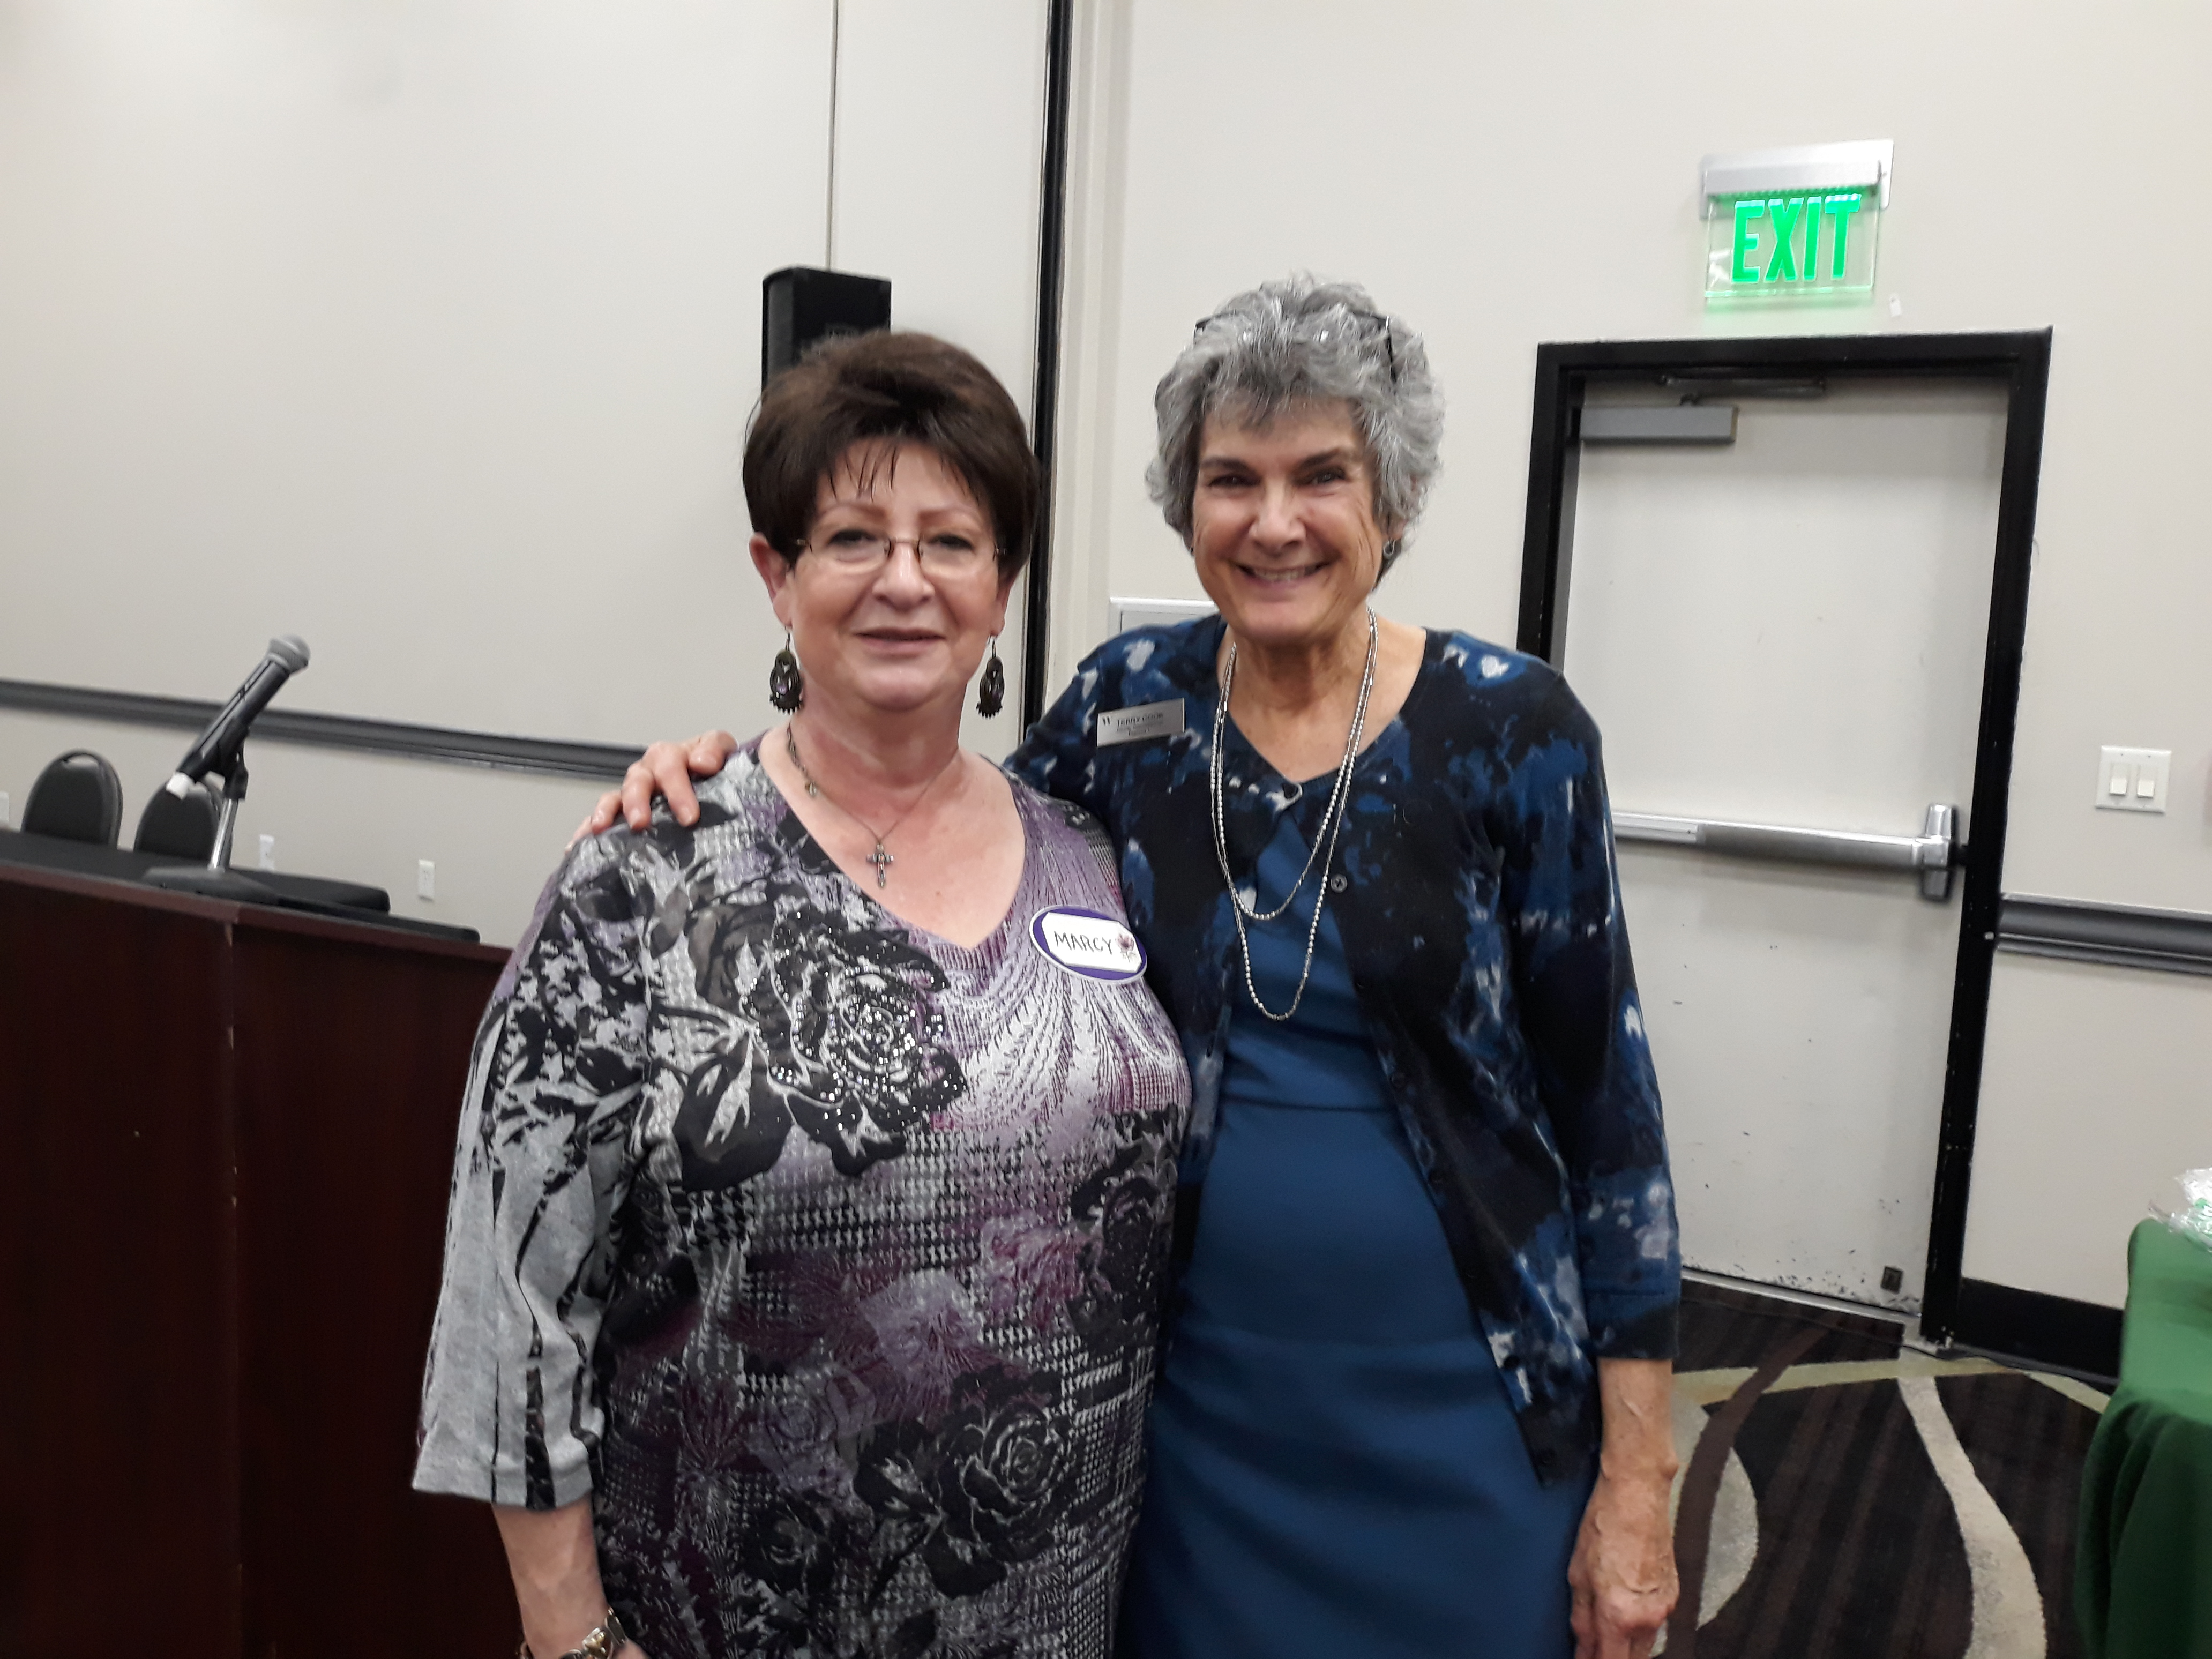 Round Rock New Neighbors Programs Director Marcy Delgado invited Commisisoner Cook standing by her to speak about fraud prevention at the group's monthly meeting.